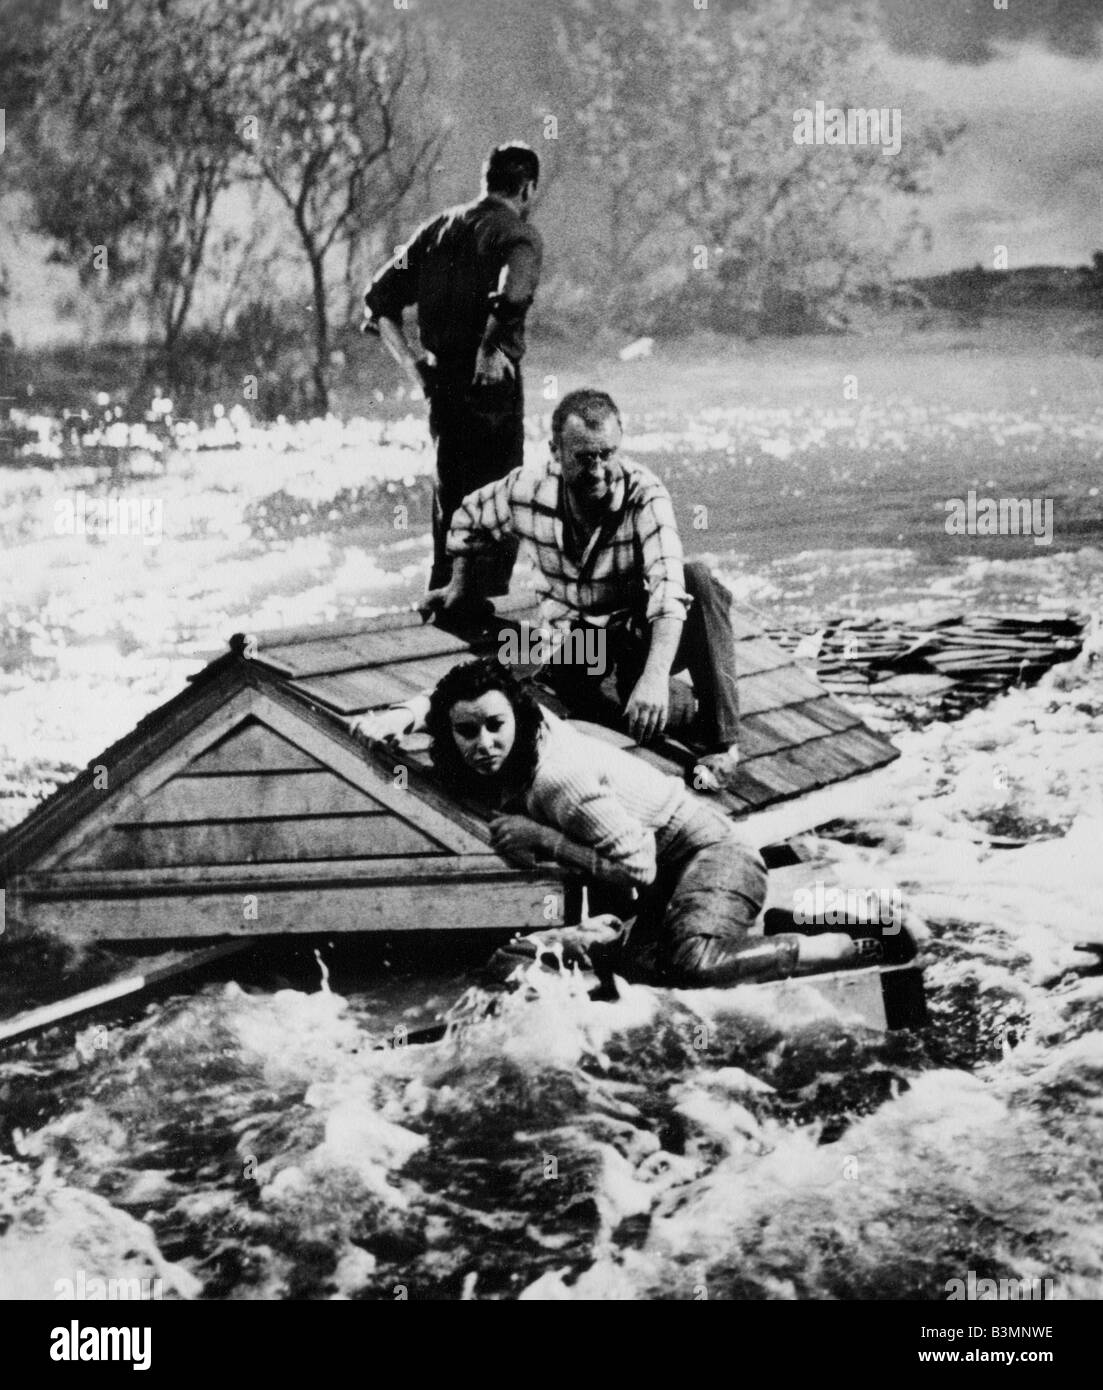 FLOODS OF FEAR  1959 Rank film with Howard Keel and Anne Heywood - Stock Image